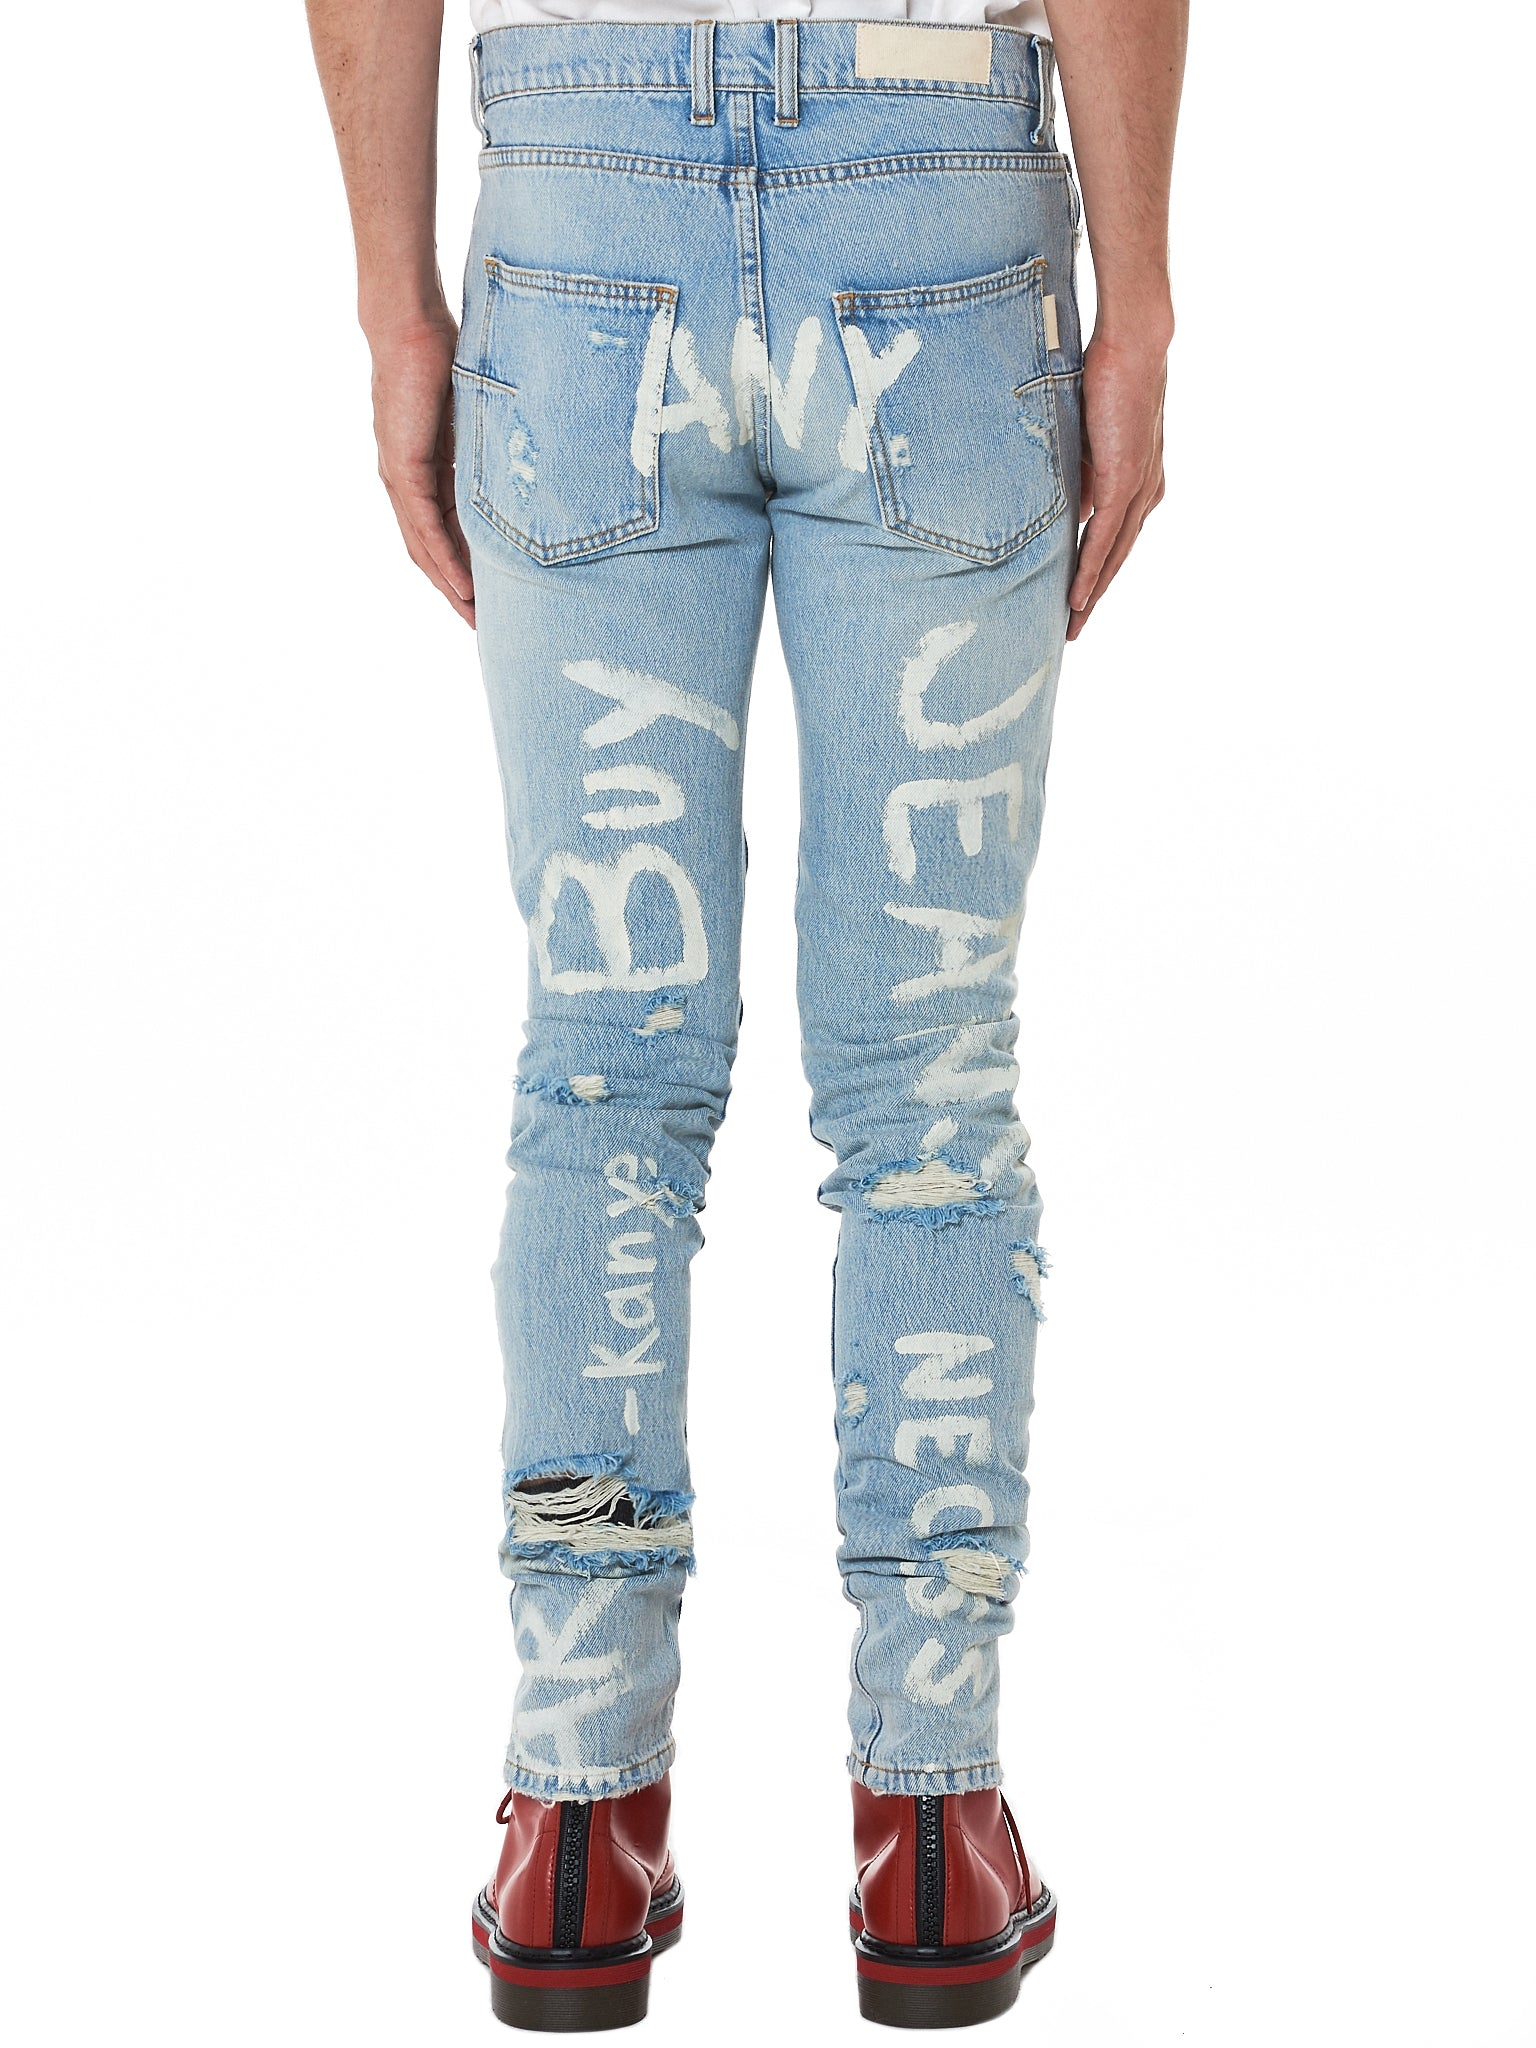 IH NOM UH NIT Distressed Denim - Hlorenzo Back